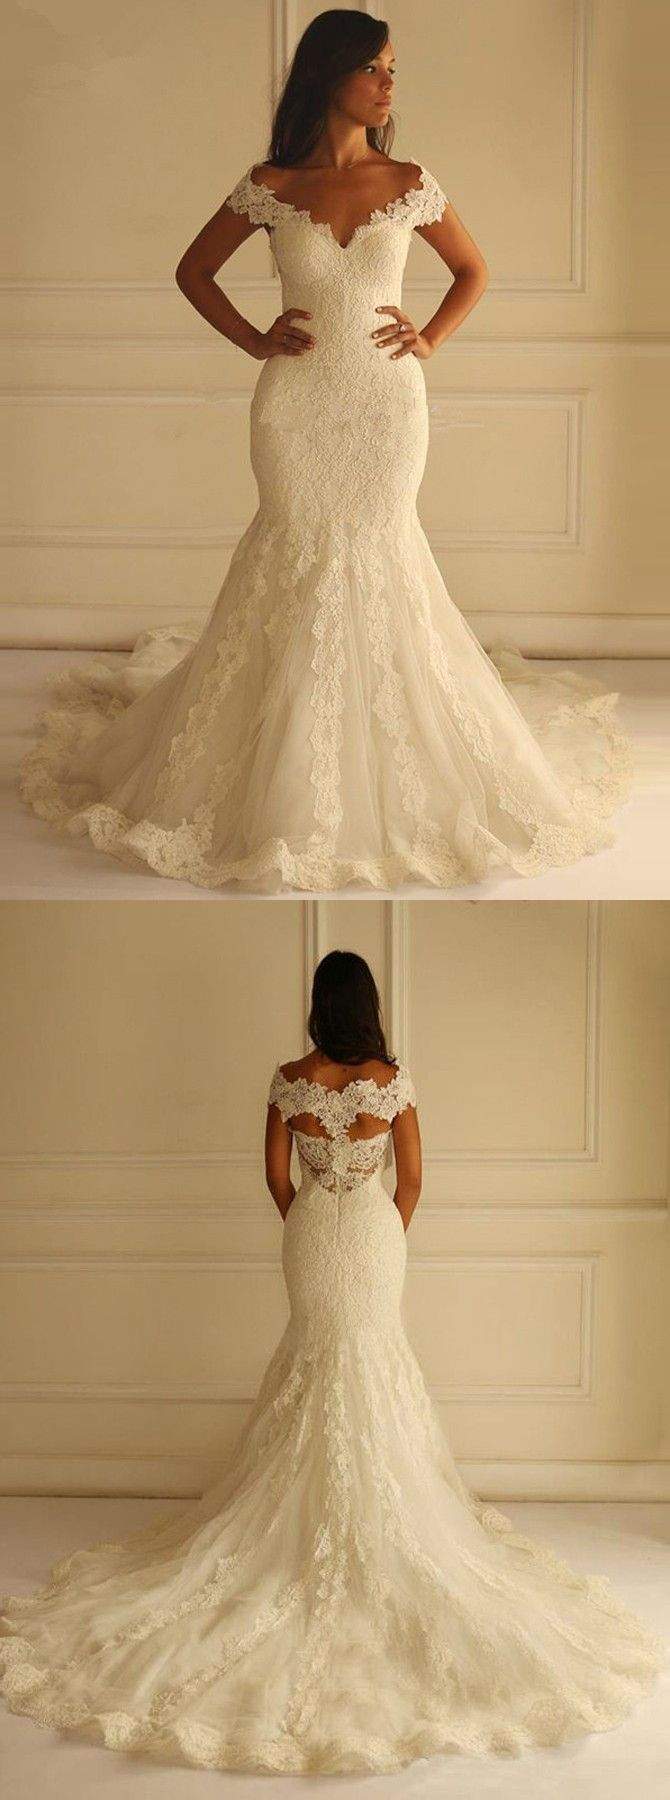 Best 25 off white wedding dresses ideas on pinterest for Wedding dress ideas for short brides